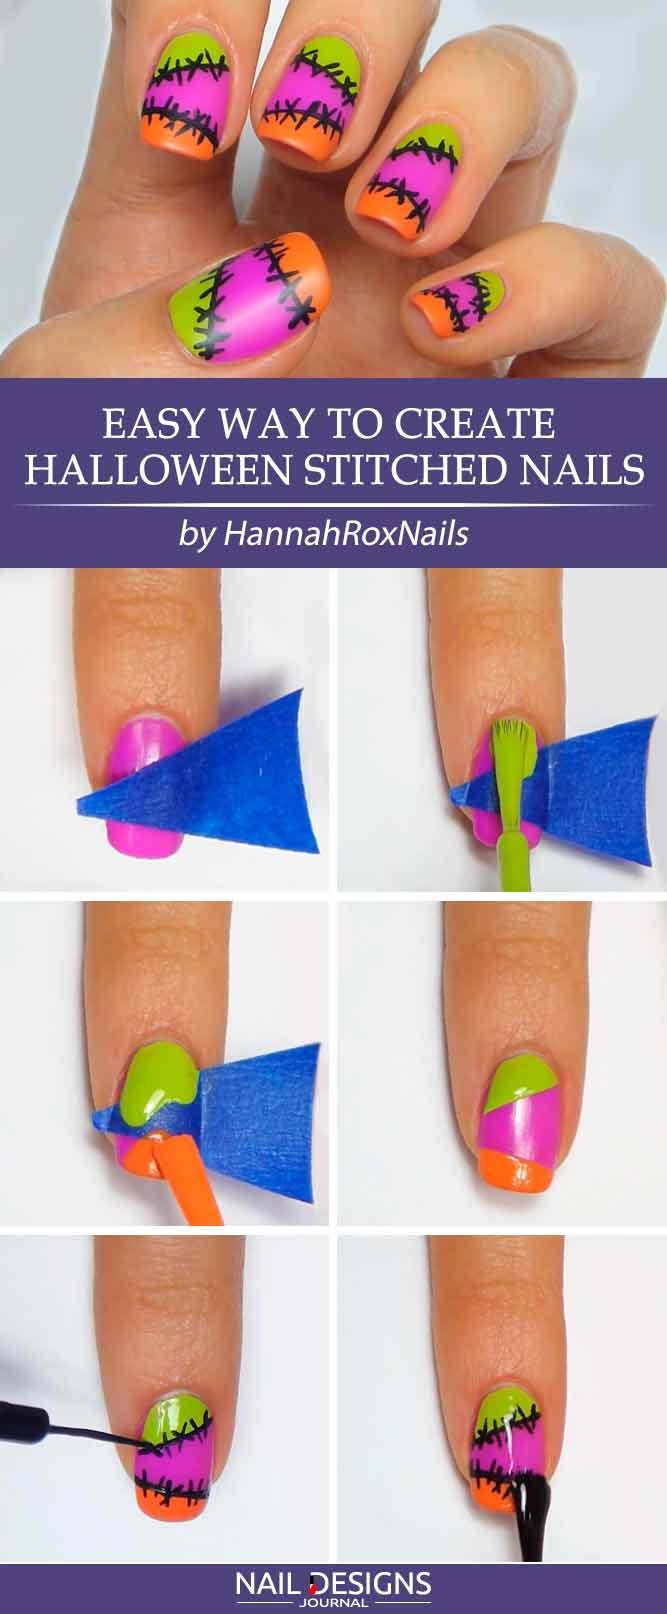 Easy Way To Create Stiched Nails